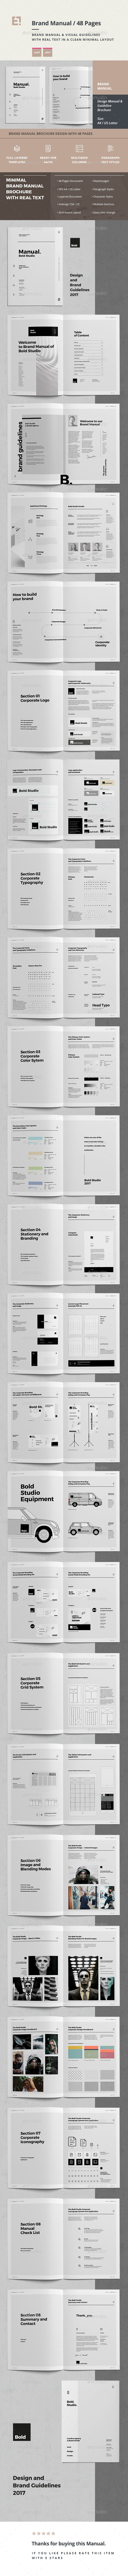 GraphicRiver Brand Manual 20668783